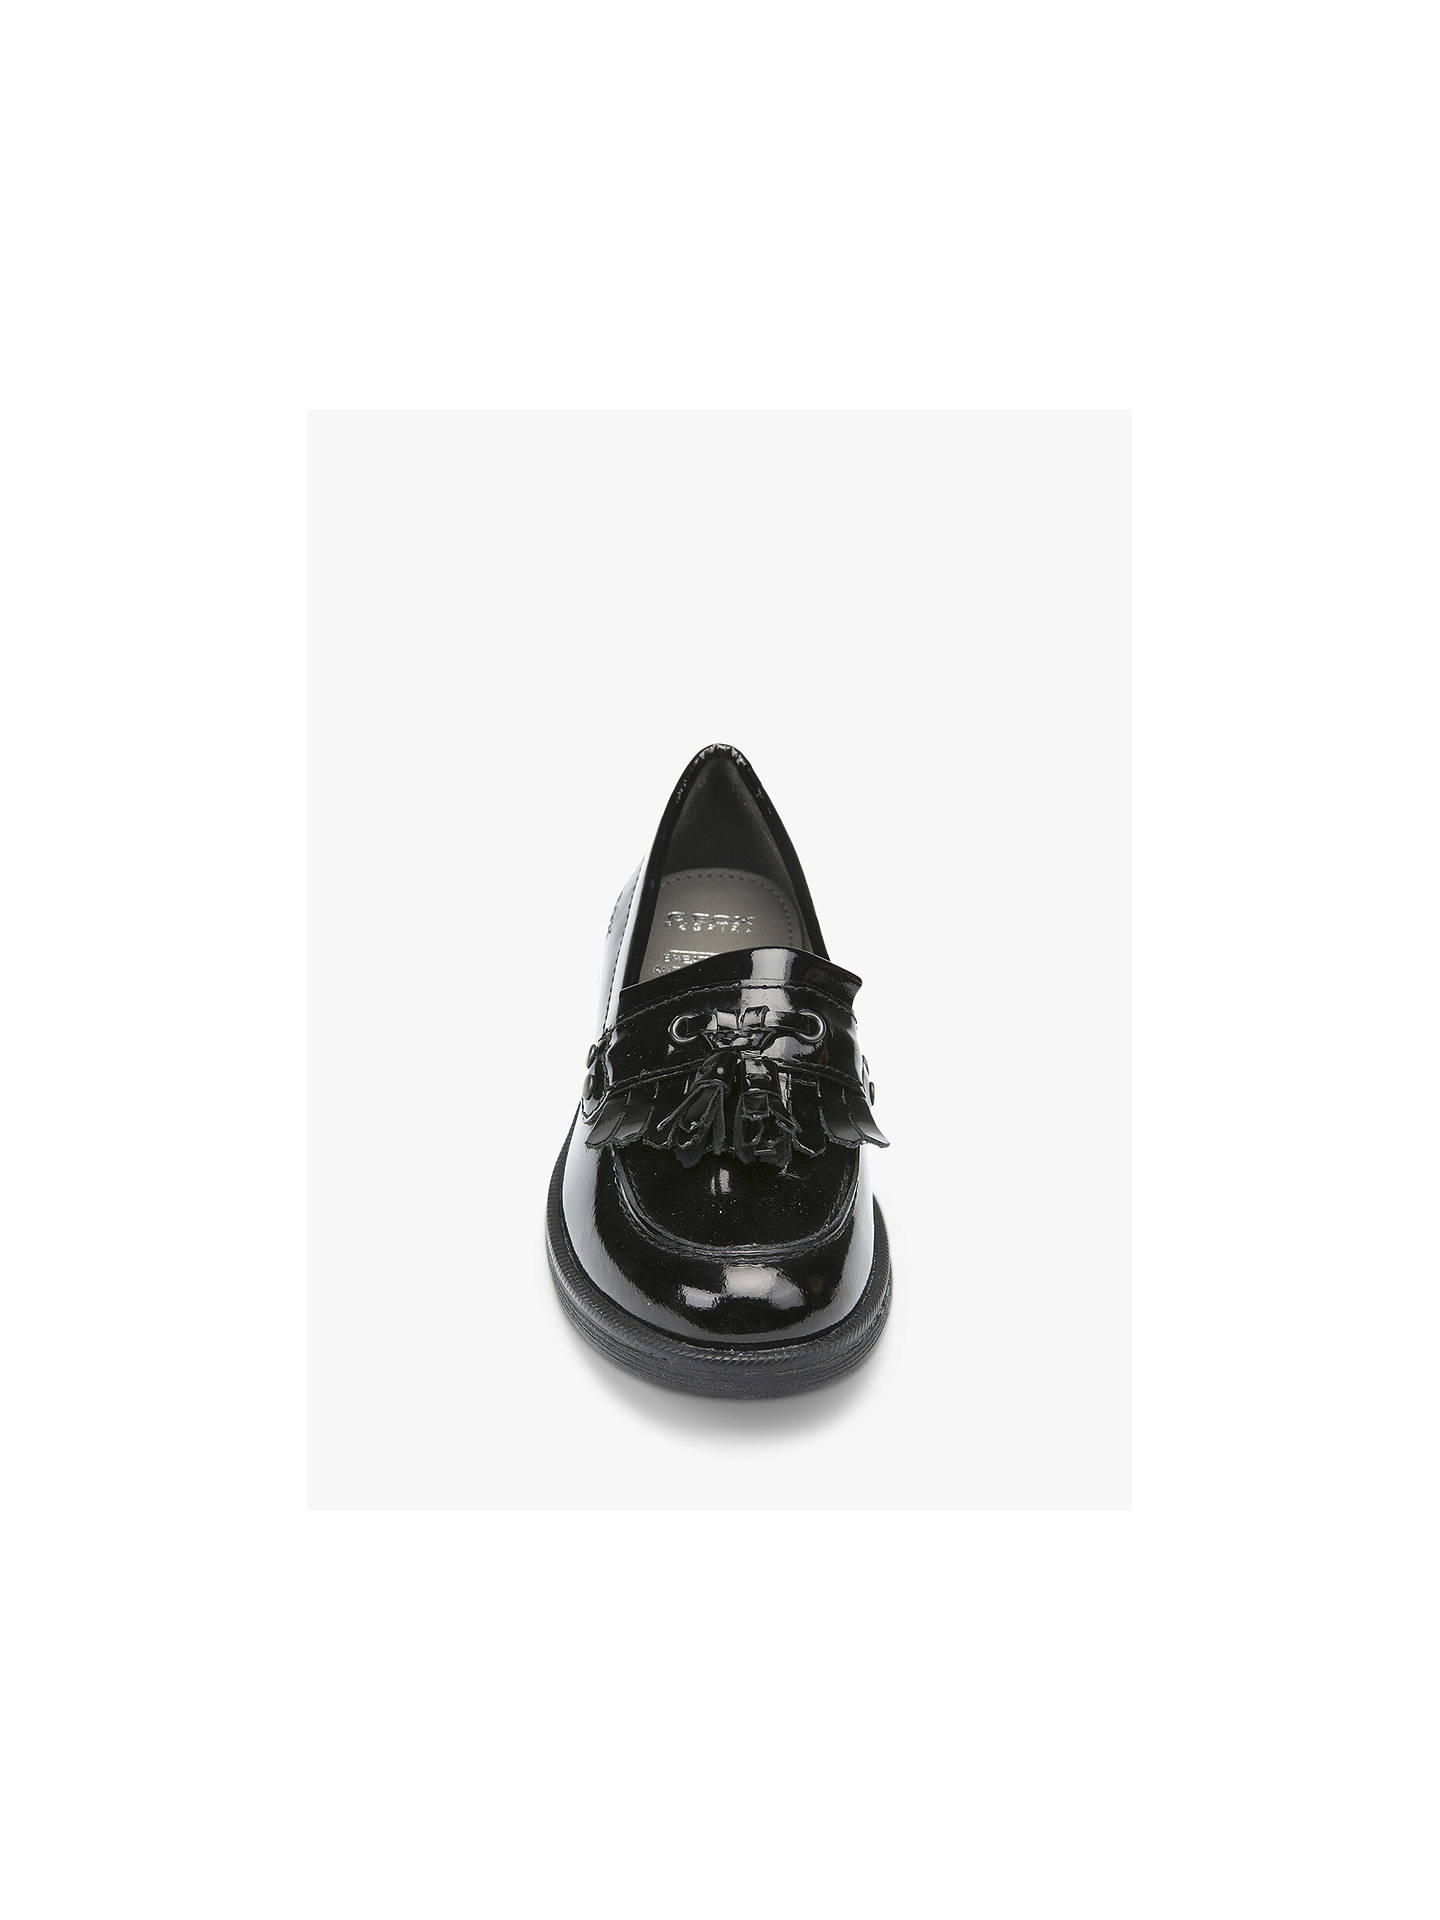 ddda7ea7080 ... Buy Geox Children's Agata Slip On Leather Loafers, Patent Black, 30  Online at johnlewis ...